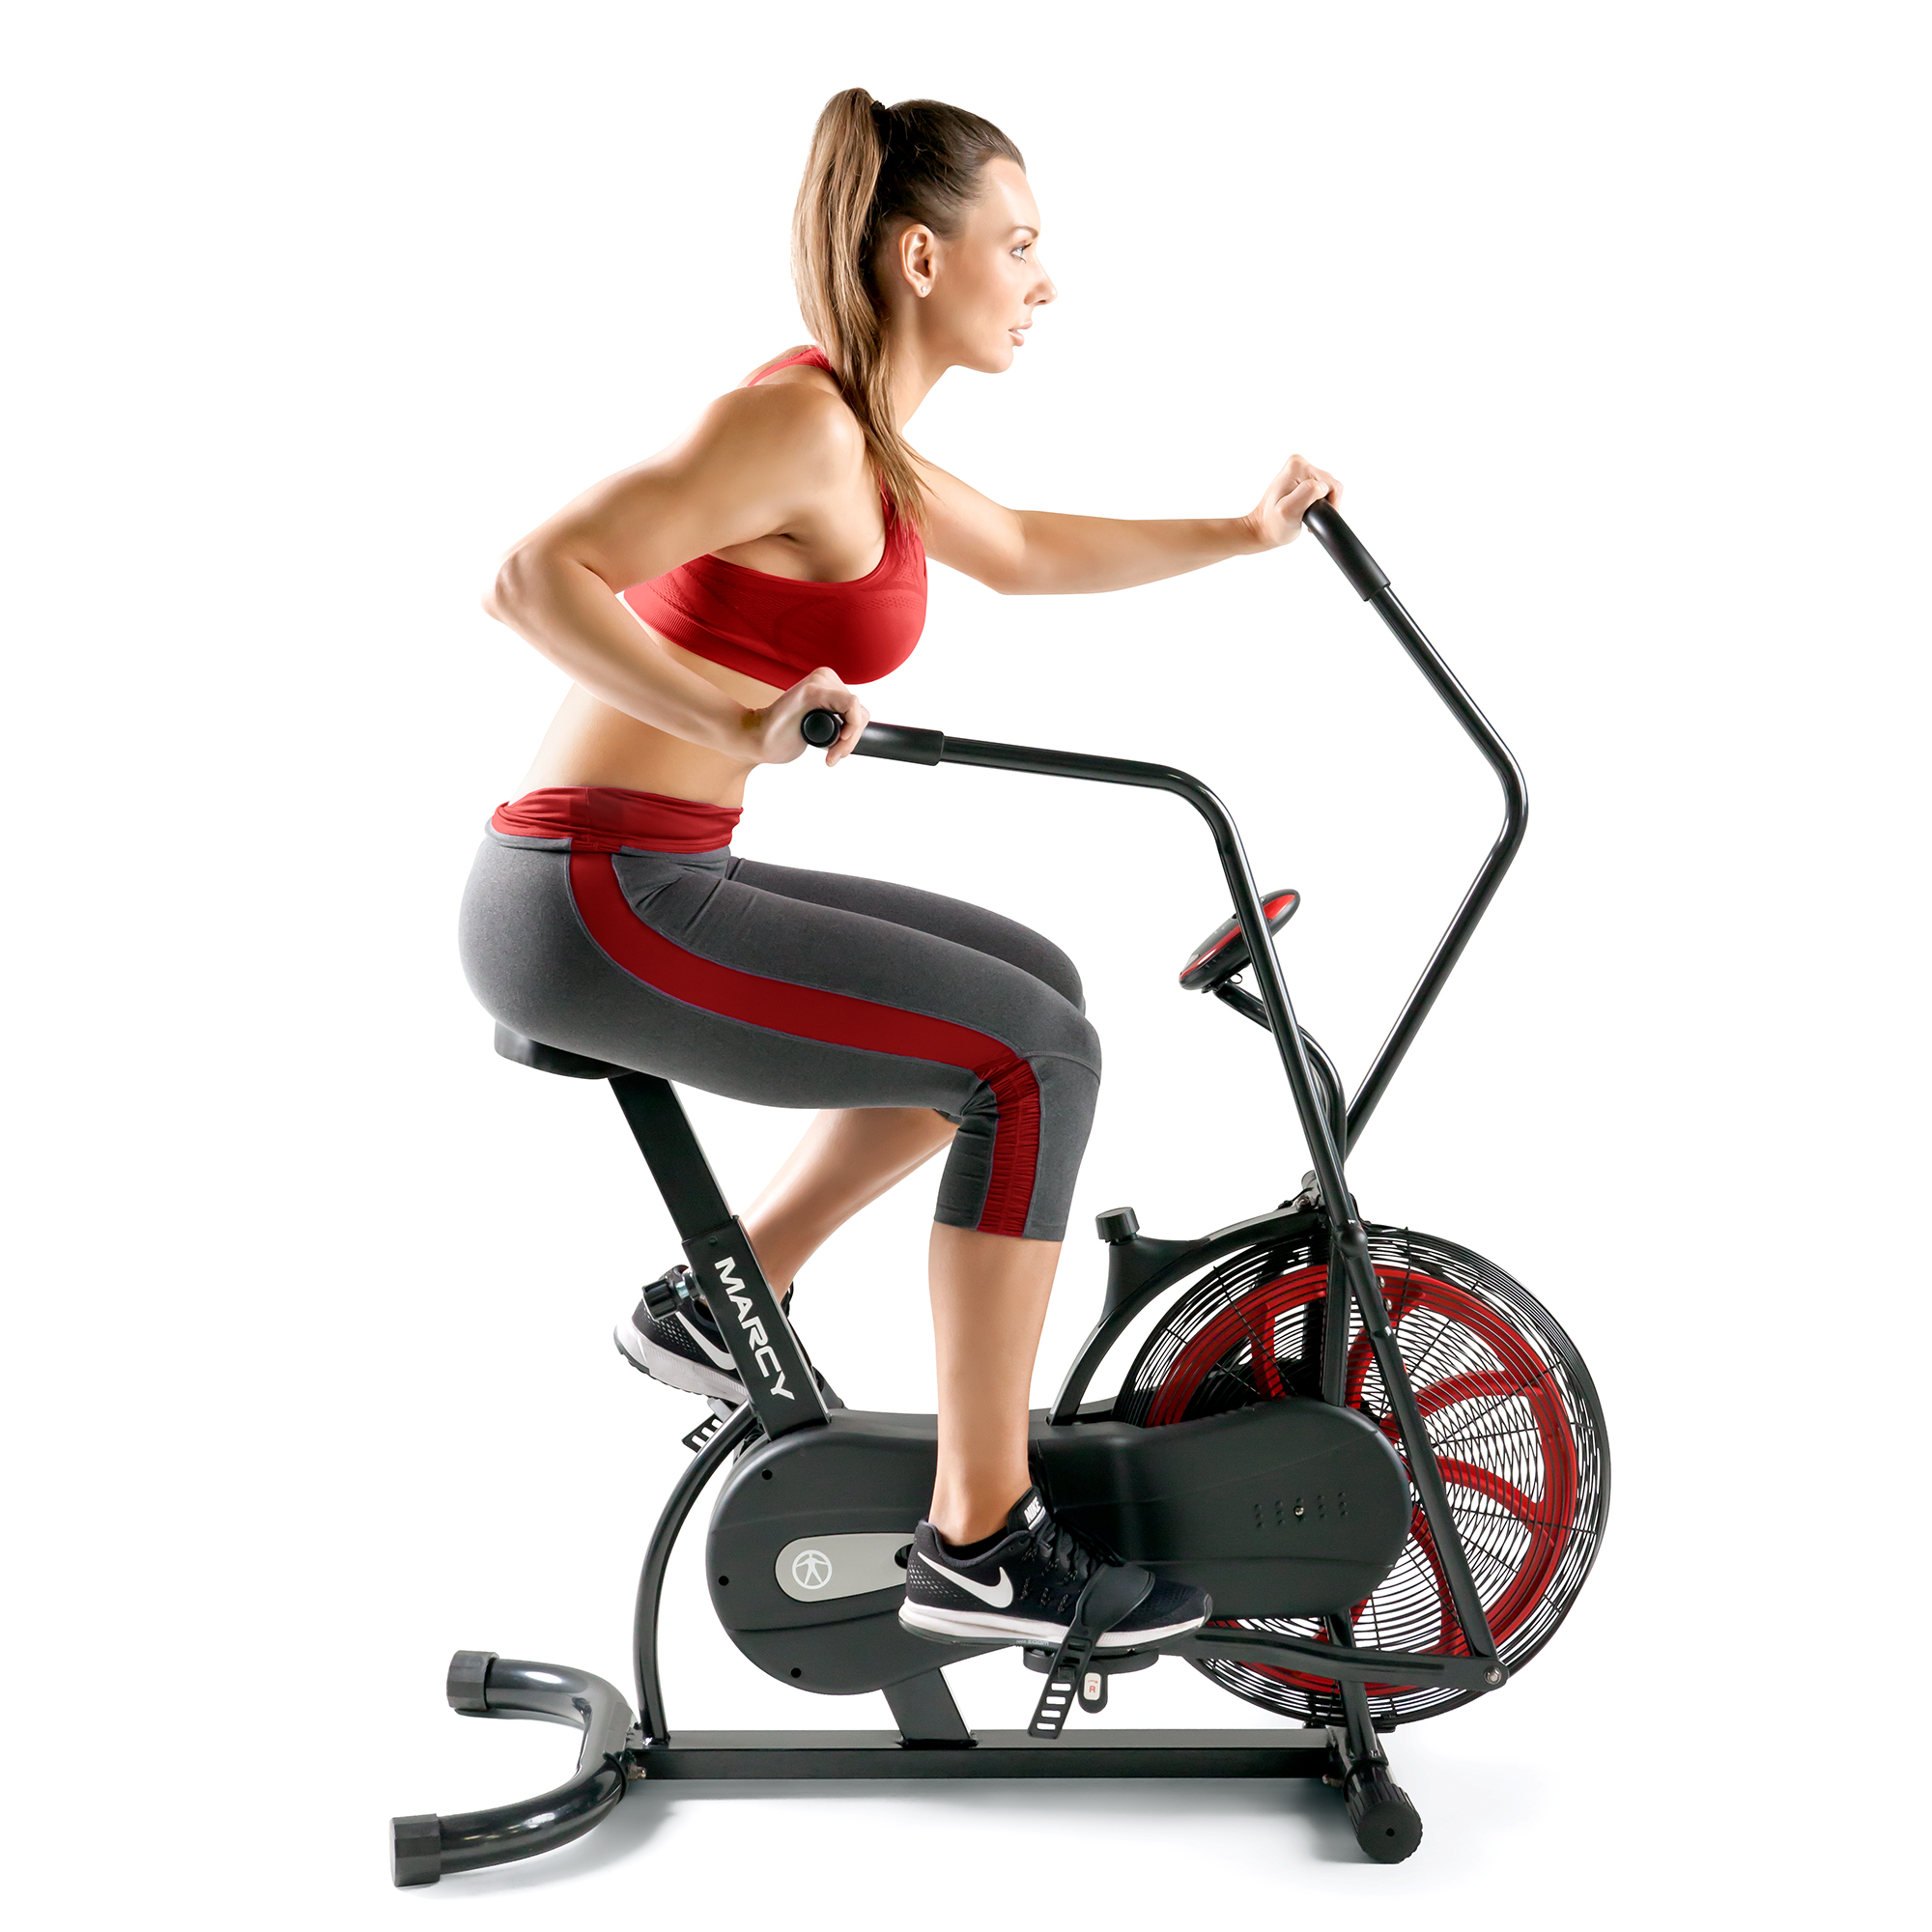 Marcy Pro Air Resistant Cardio Fan Bike Home Gym Full Body Workout Exercise NS-1000